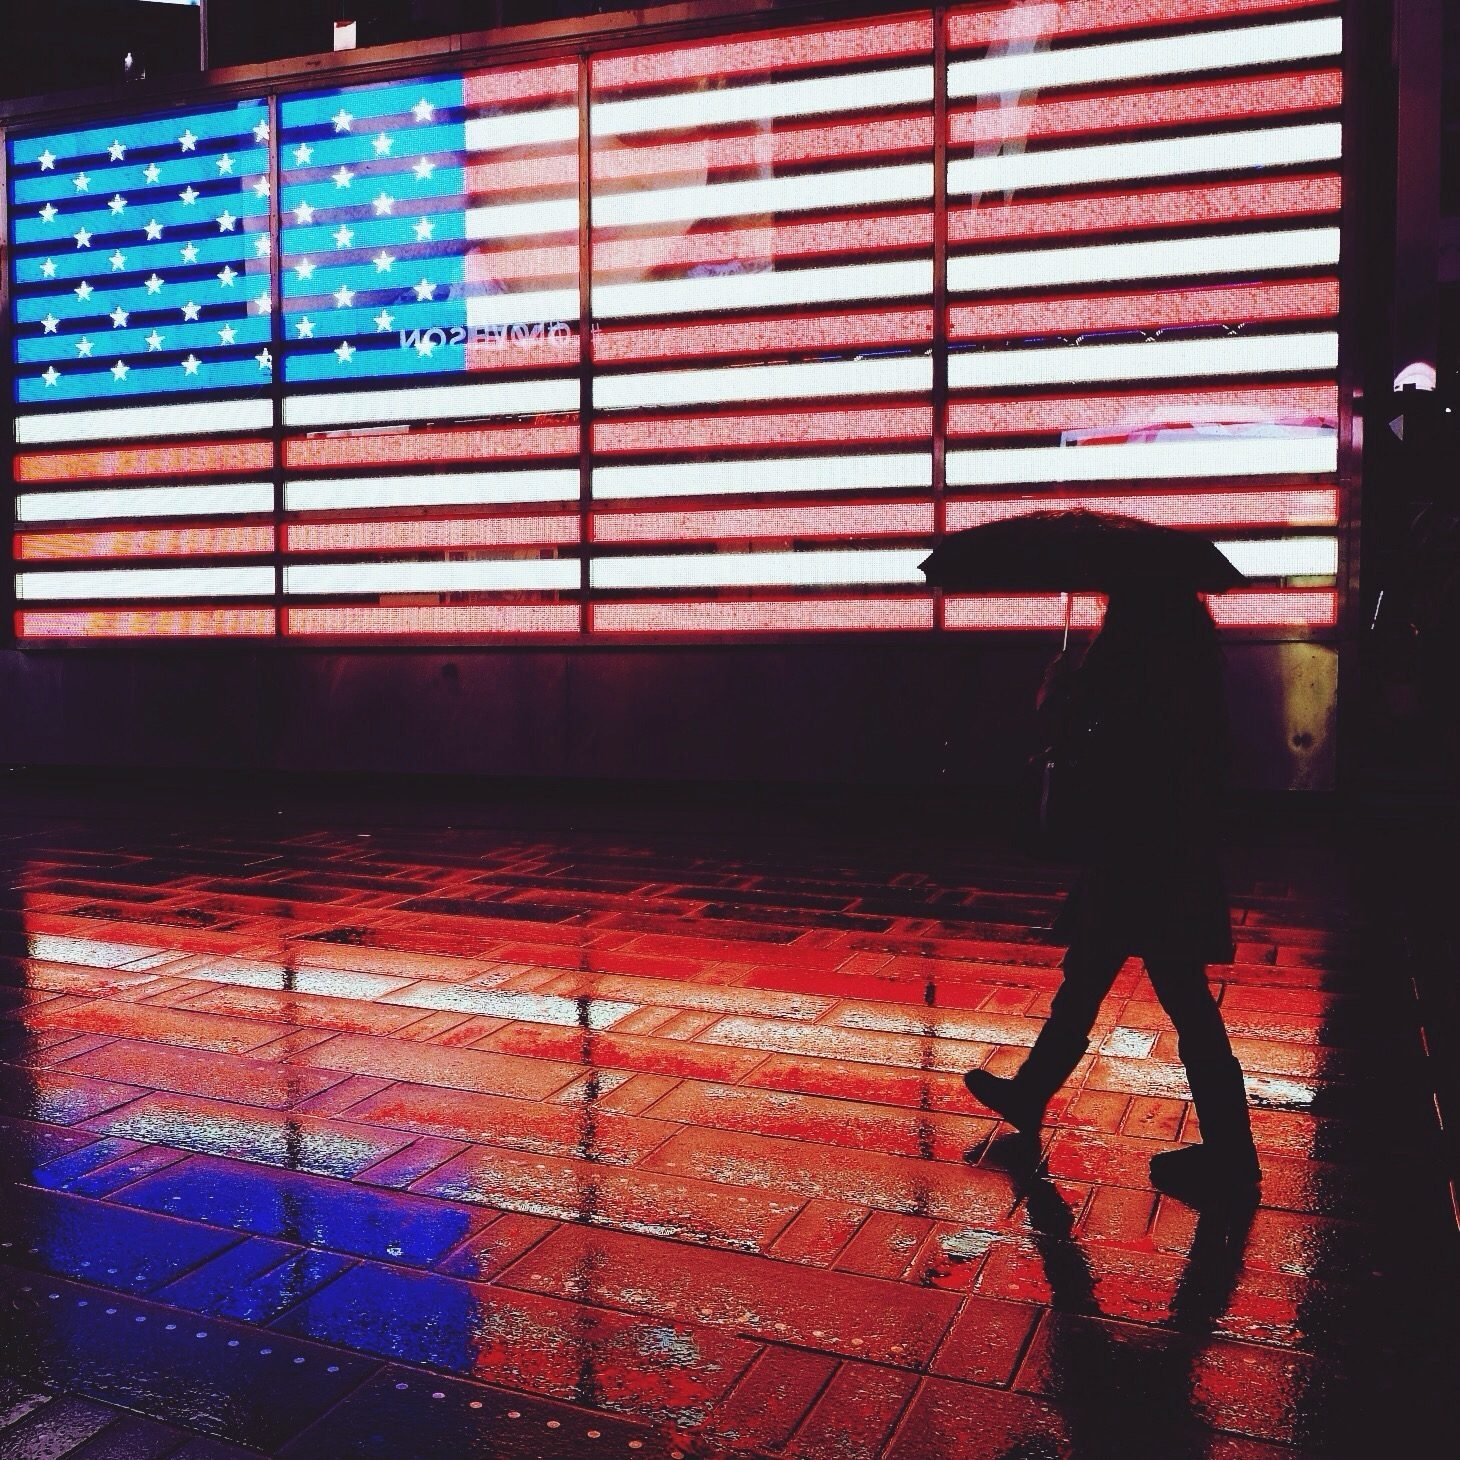 a silhouetted figure holding an umbrella walks past an LED american flag in times square, new york city, on a rainy night